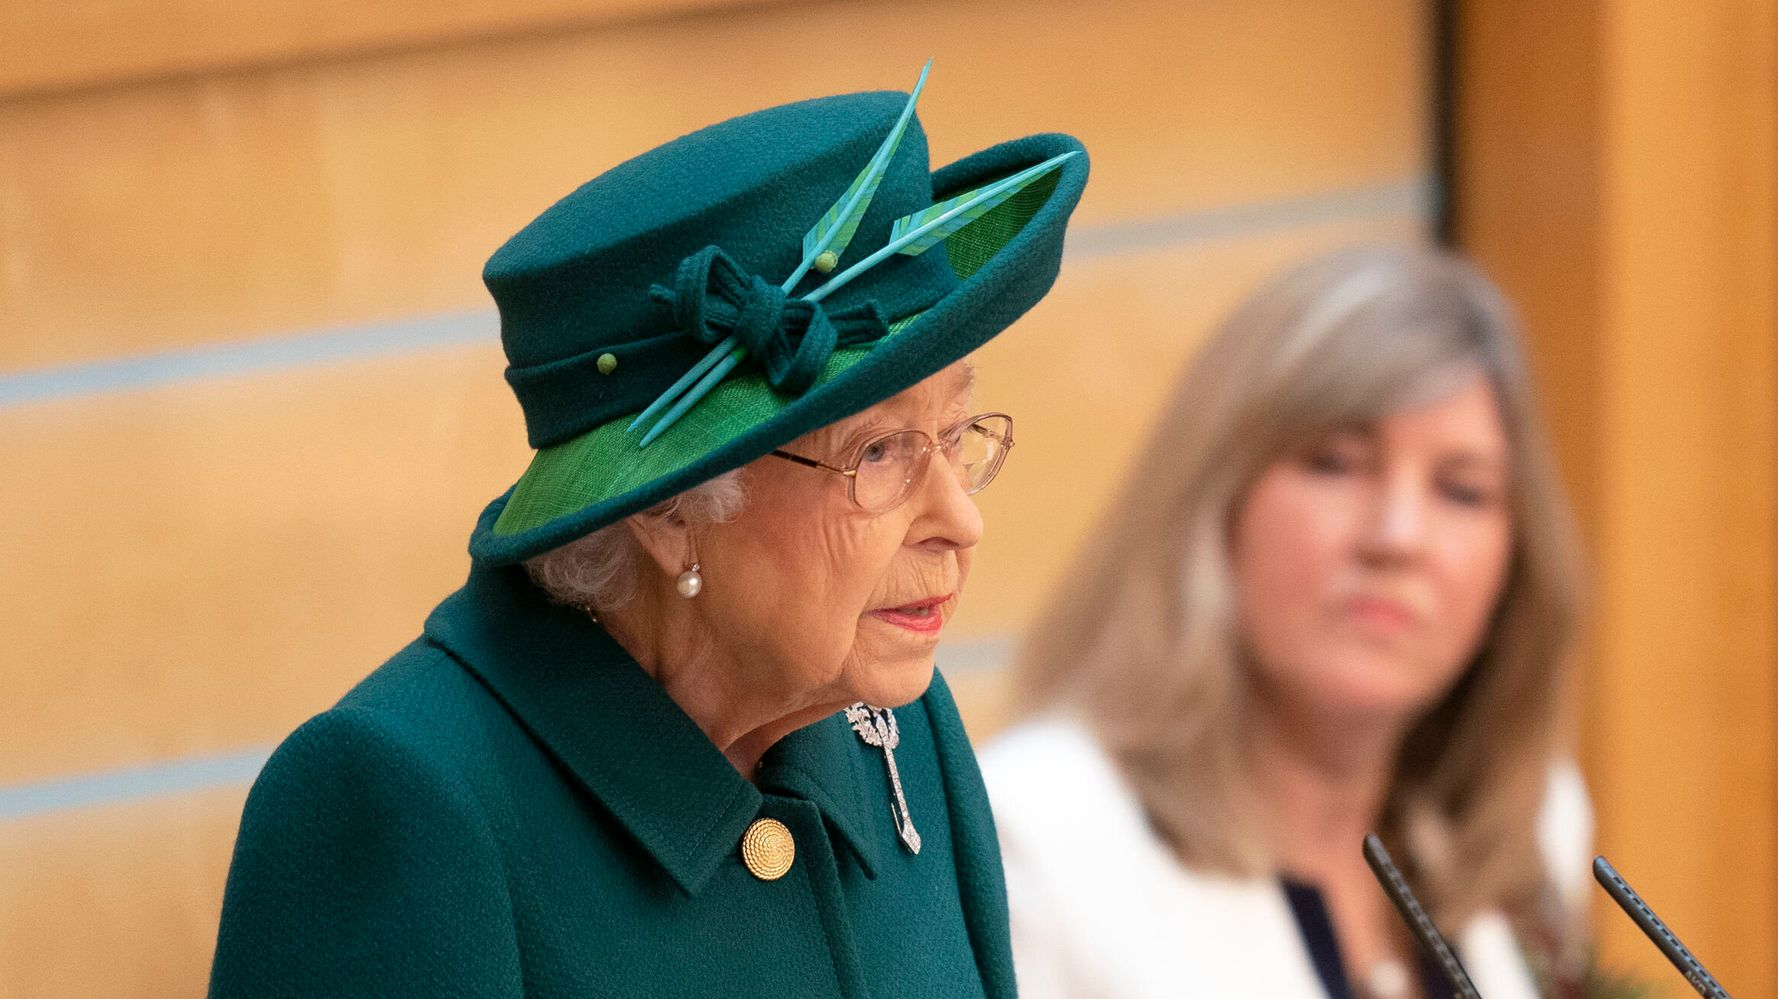 Queen Elizabeth Speaks About Prince Philip 6 Months After His Death